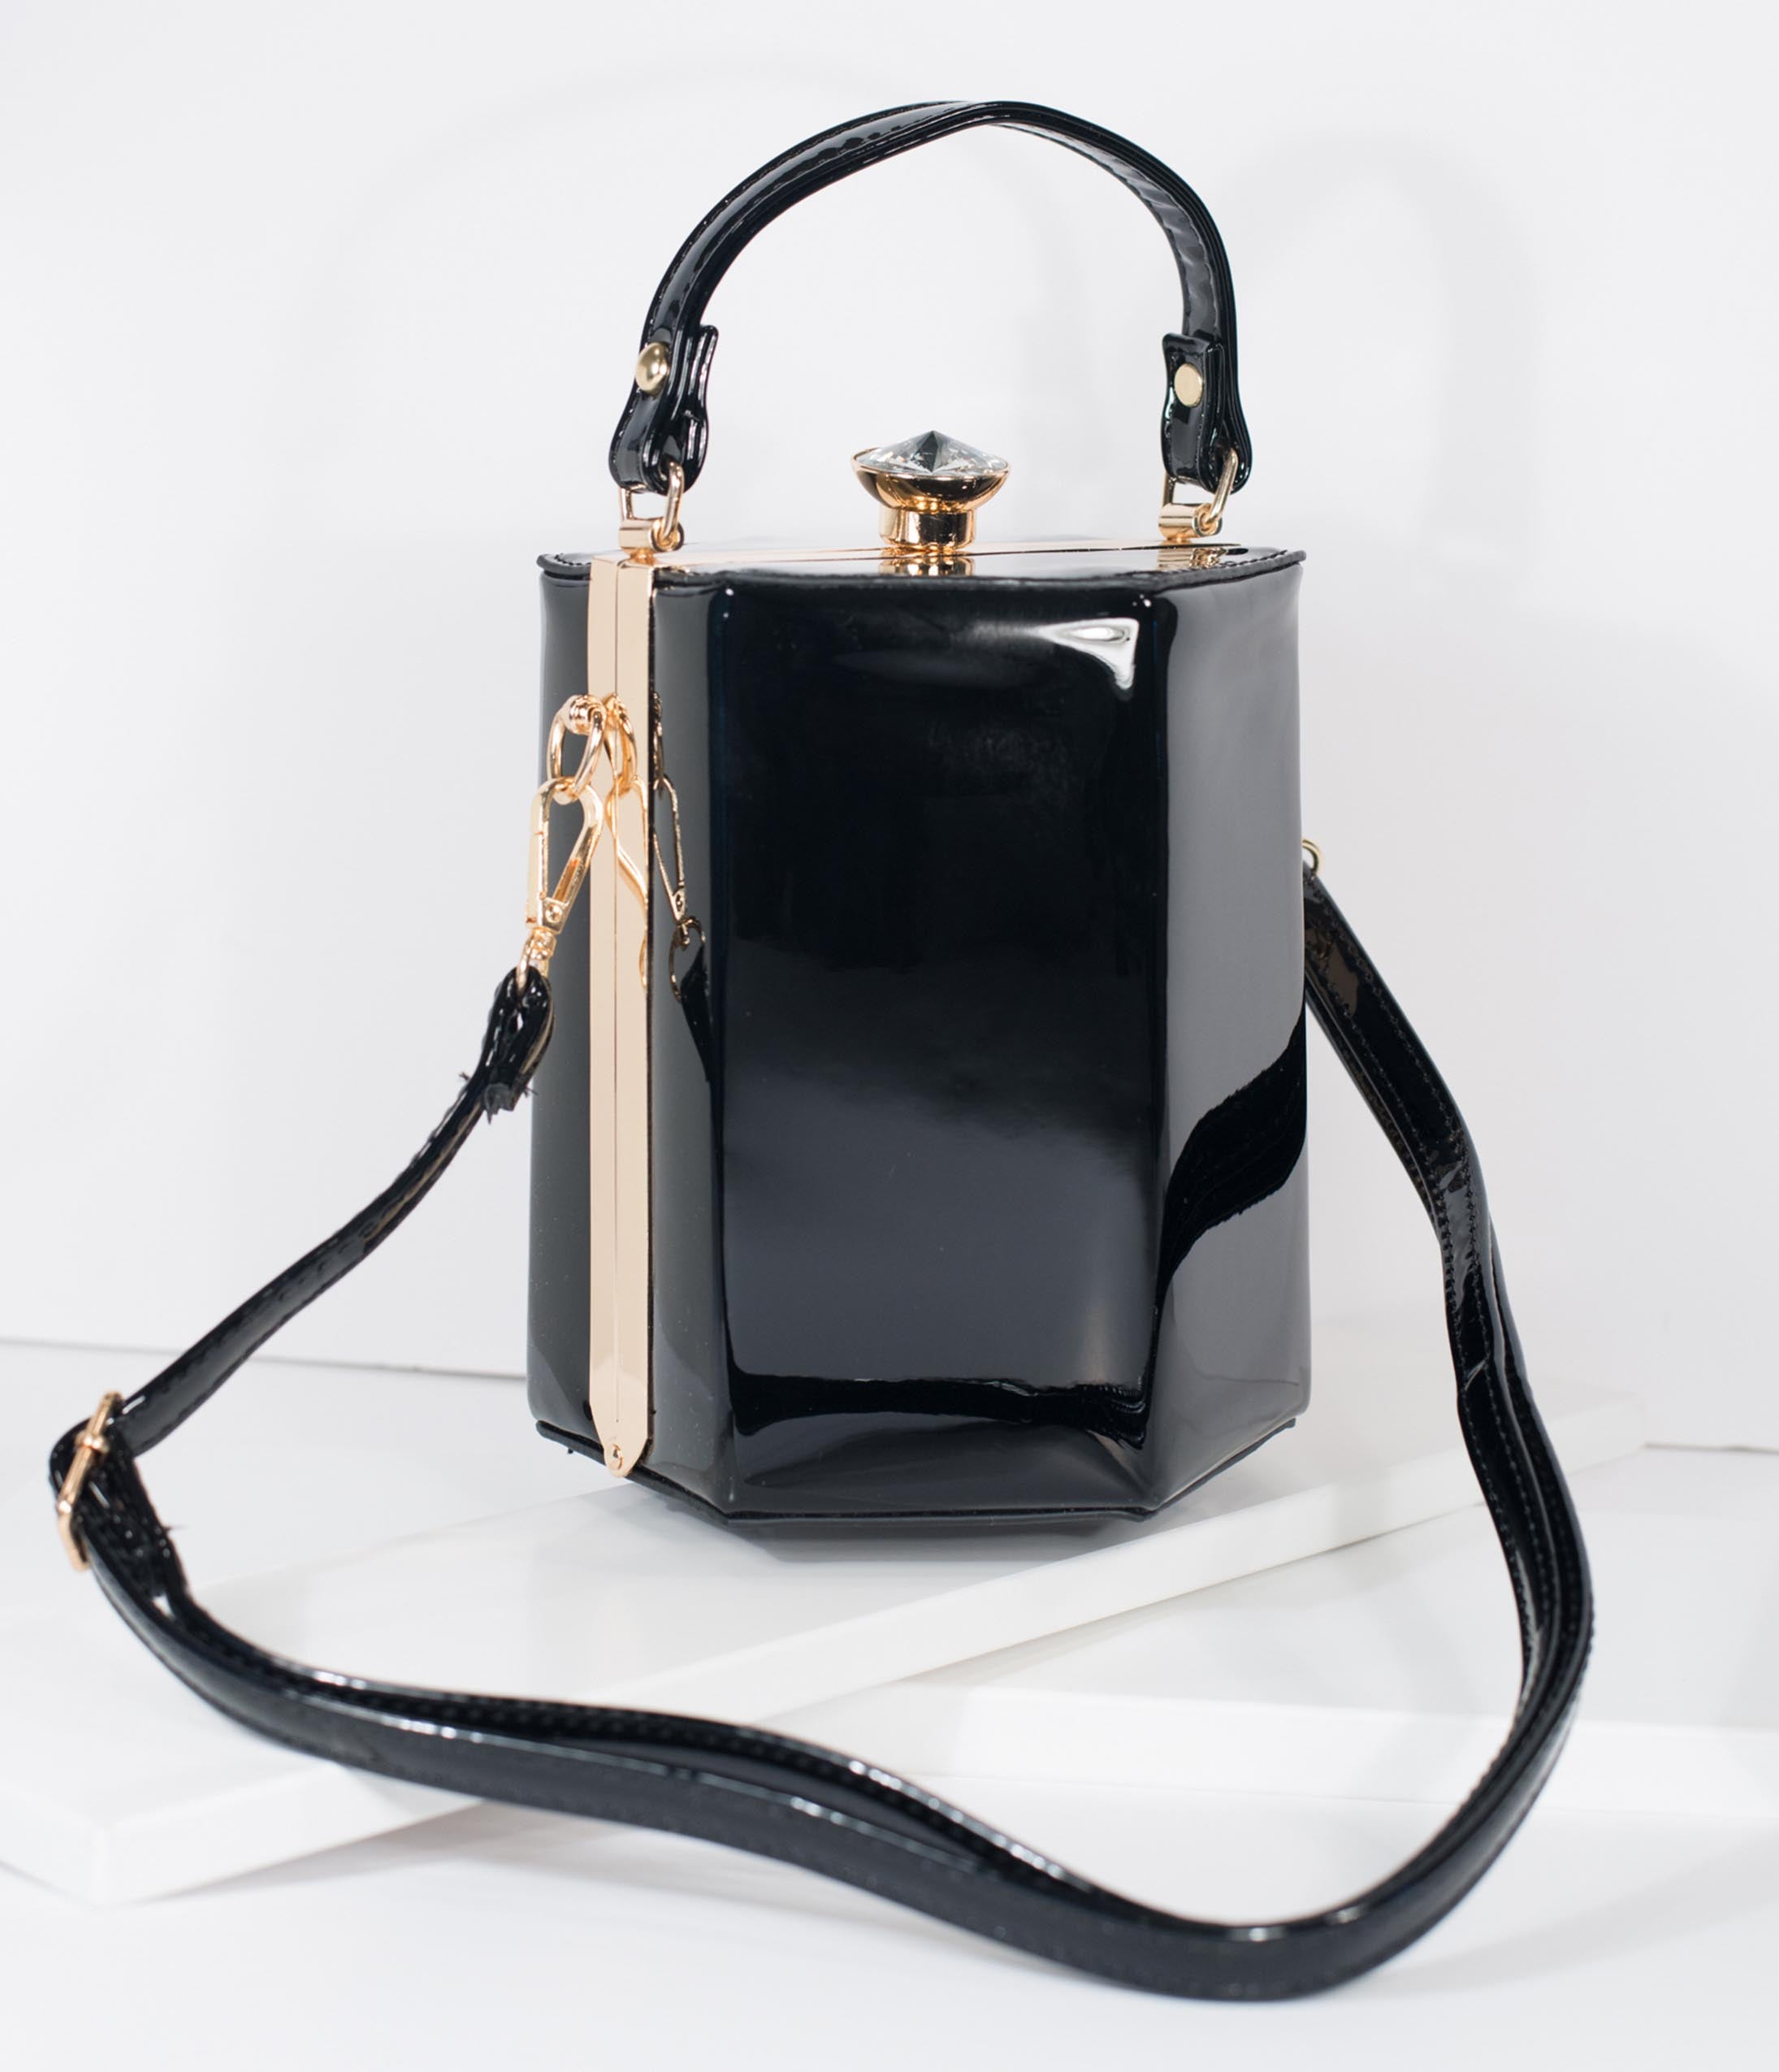 1950s Handbags, Purses, and Evening Bag Styles Black Patent Leatherette Hexagon Hard Case Purse $58.00 AT vintagedancer.com